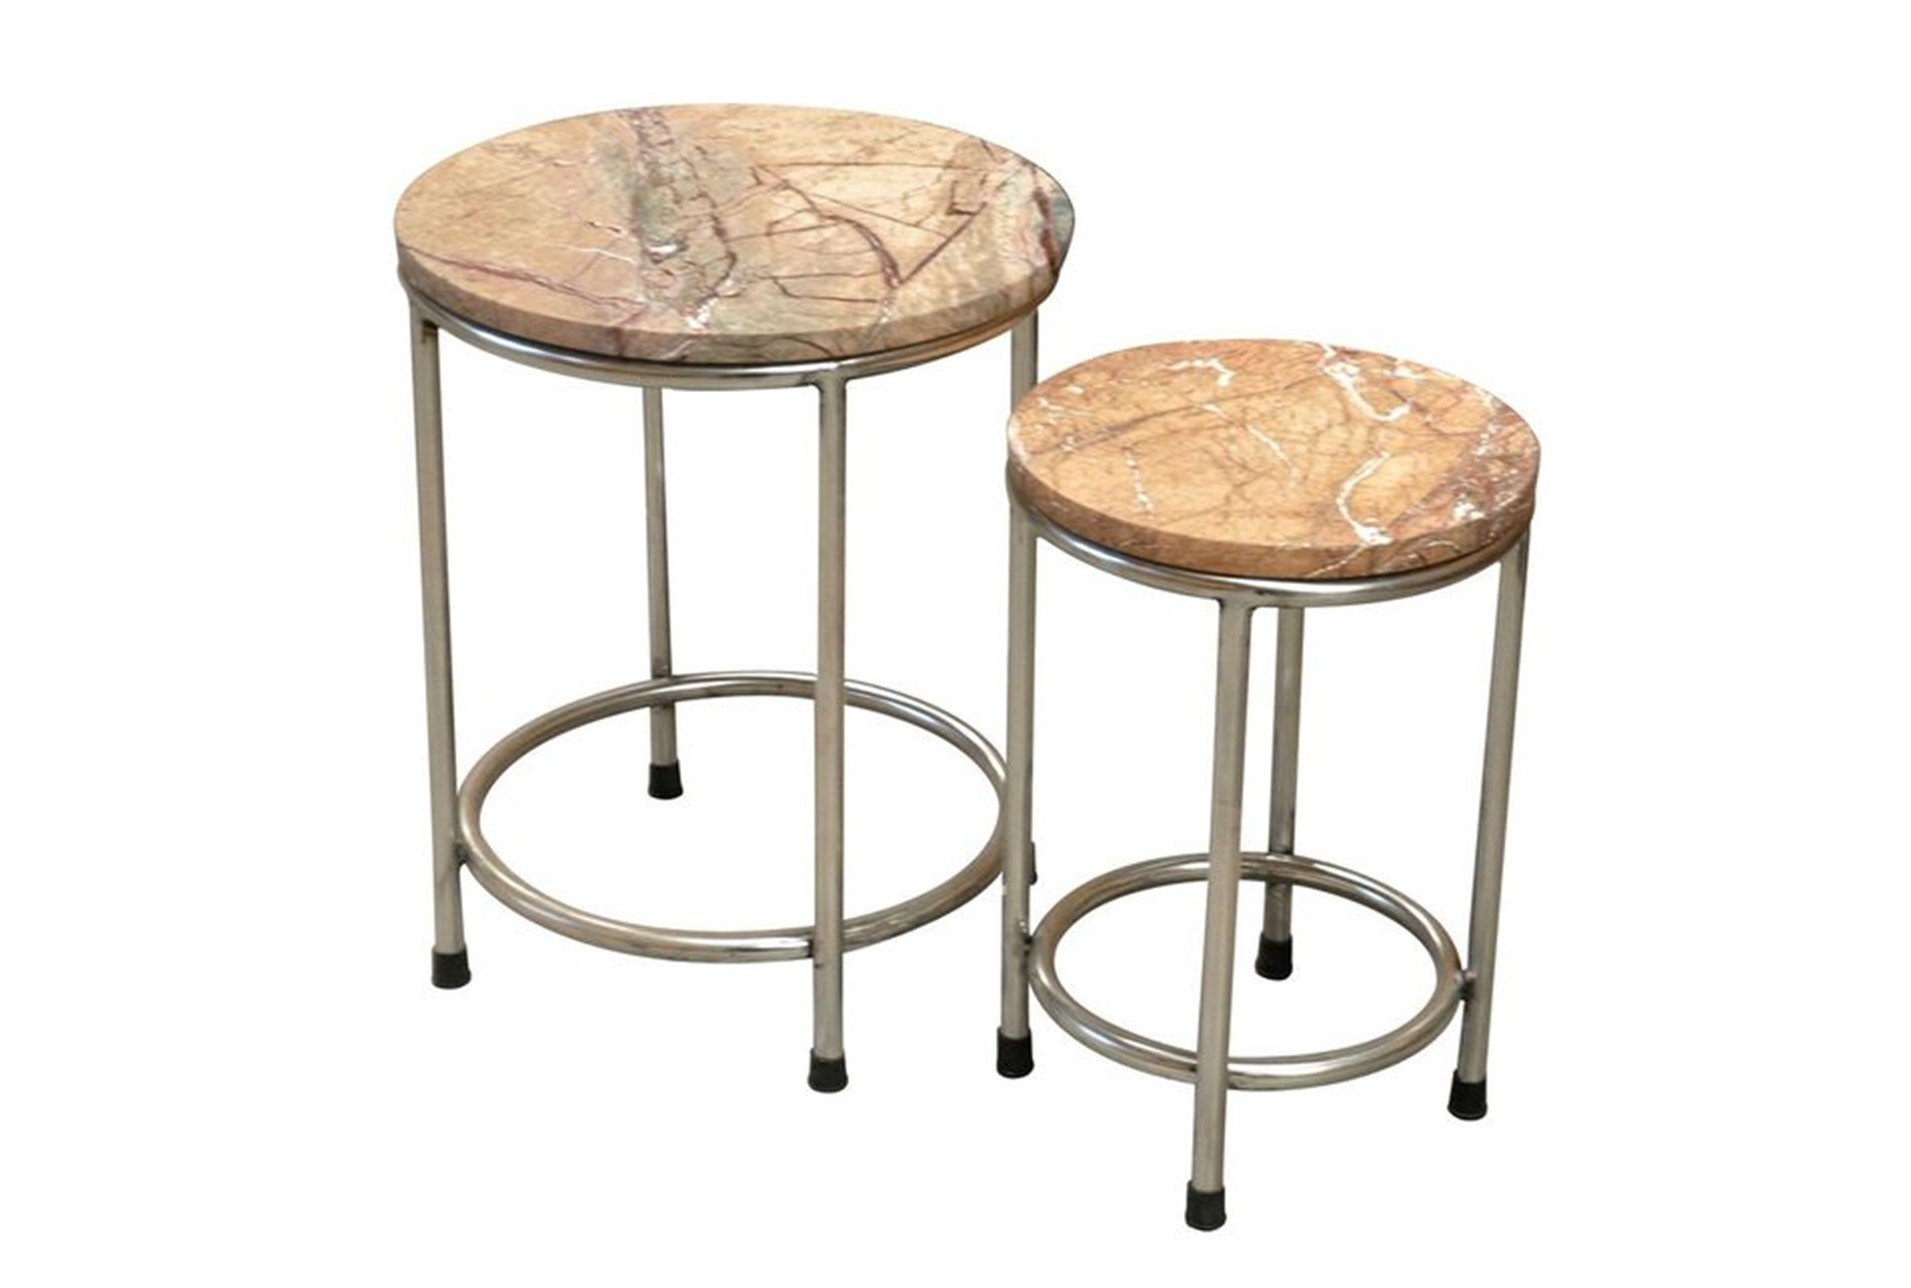 Set of 2 iron and marble end tables qty 1 has been successfully added to your cart